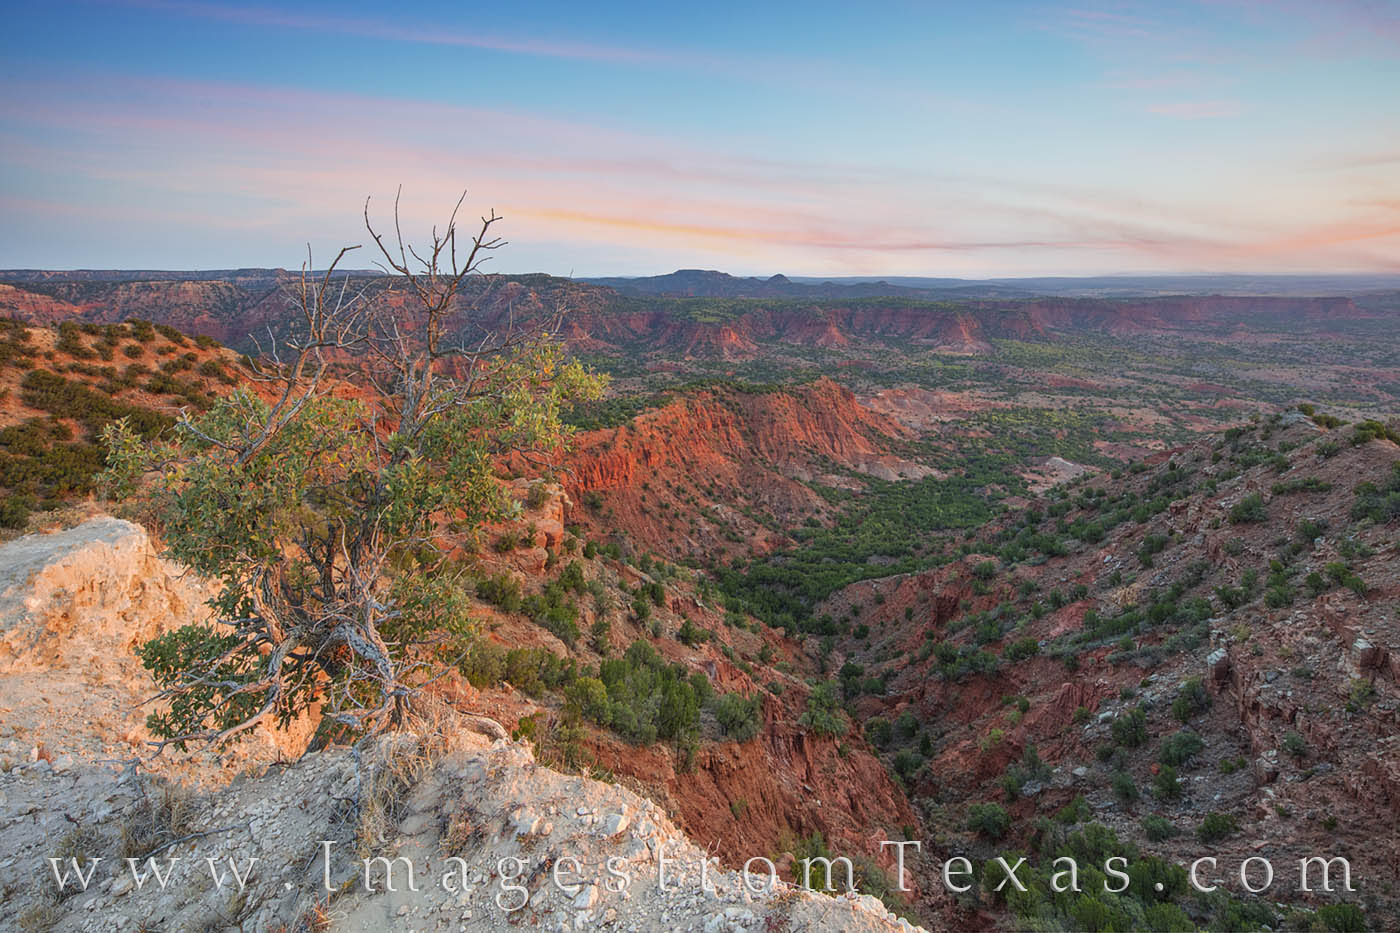 Soft clouds filled the morning sky in this photograph from the Haynes Ridge Overlook in Caprock Canyons State Park. The hike...